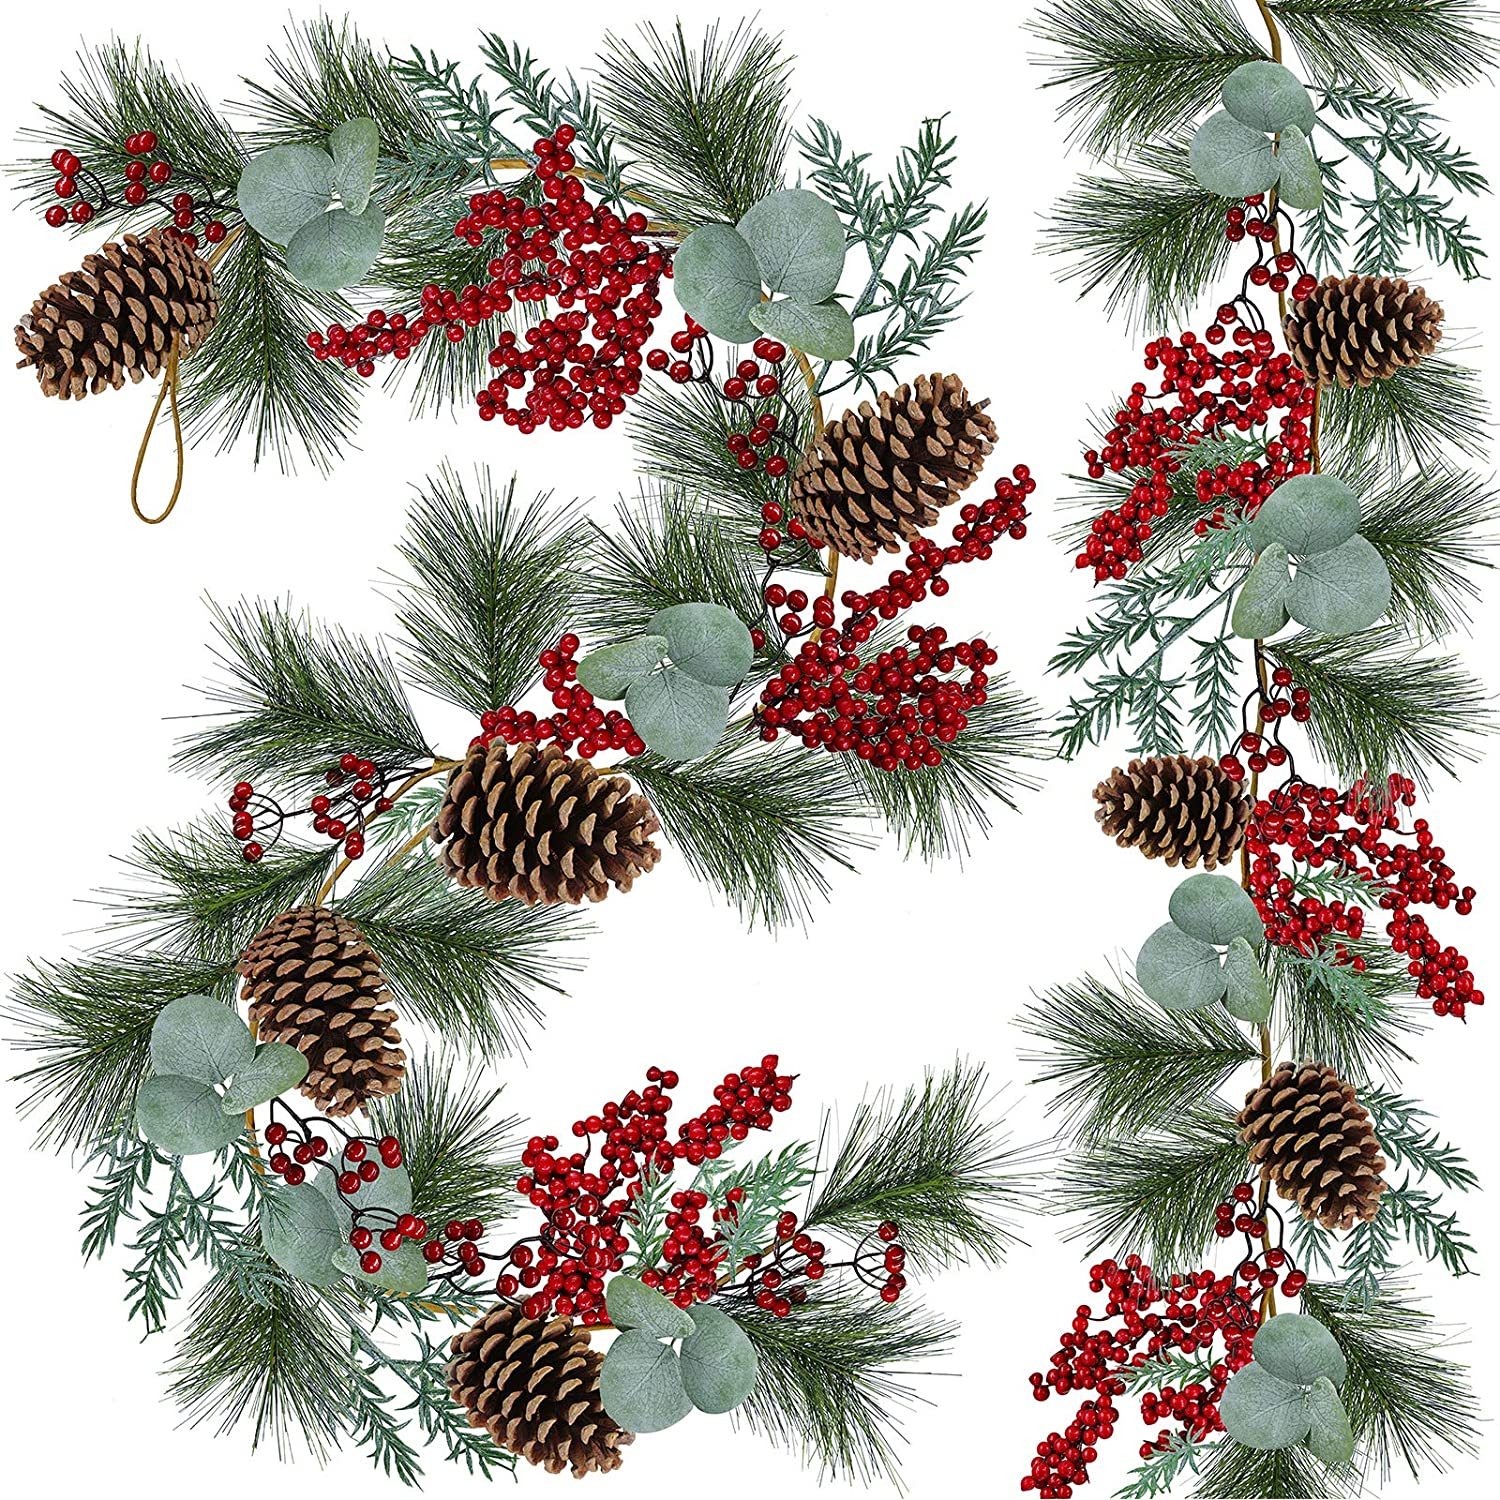 2 PCS 6' Long Christmas Artificial Pine Needle Garland Wired Rustic Twig Vine Birch Garland with Assorted Faux Red Berries Eucalyptus Leaves Natural Pine Cones Garland Holiday Season Winter Decor